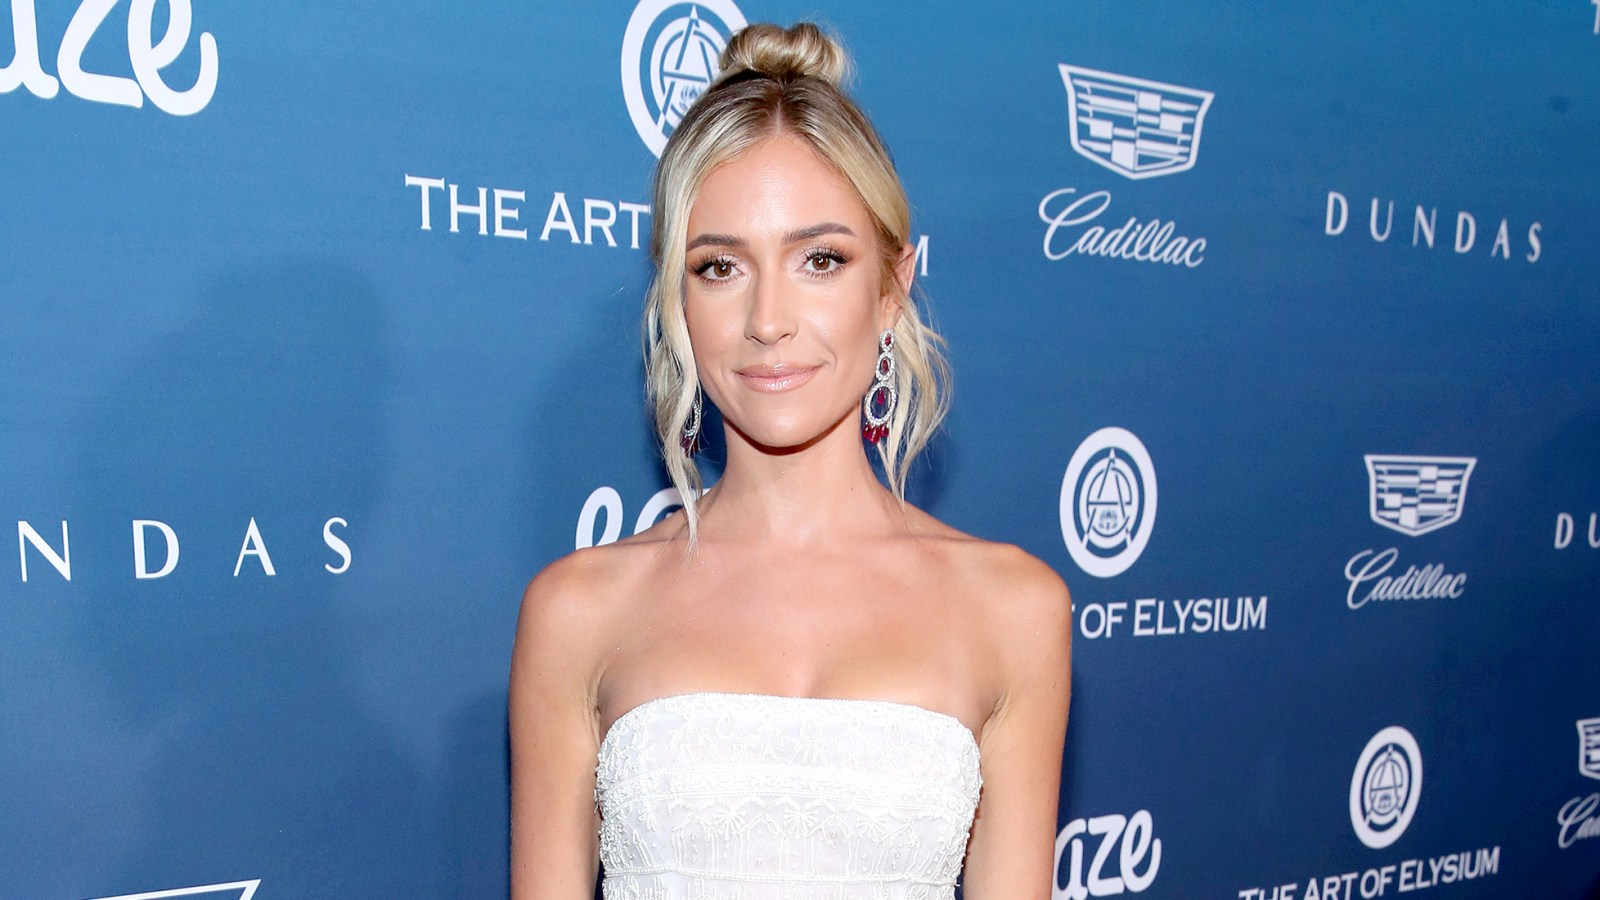 867ad580188111 Kristin Cavallari Makes 'Annoying' Remark About How Husband Jay Cutler  Helps With Work-Life Balance